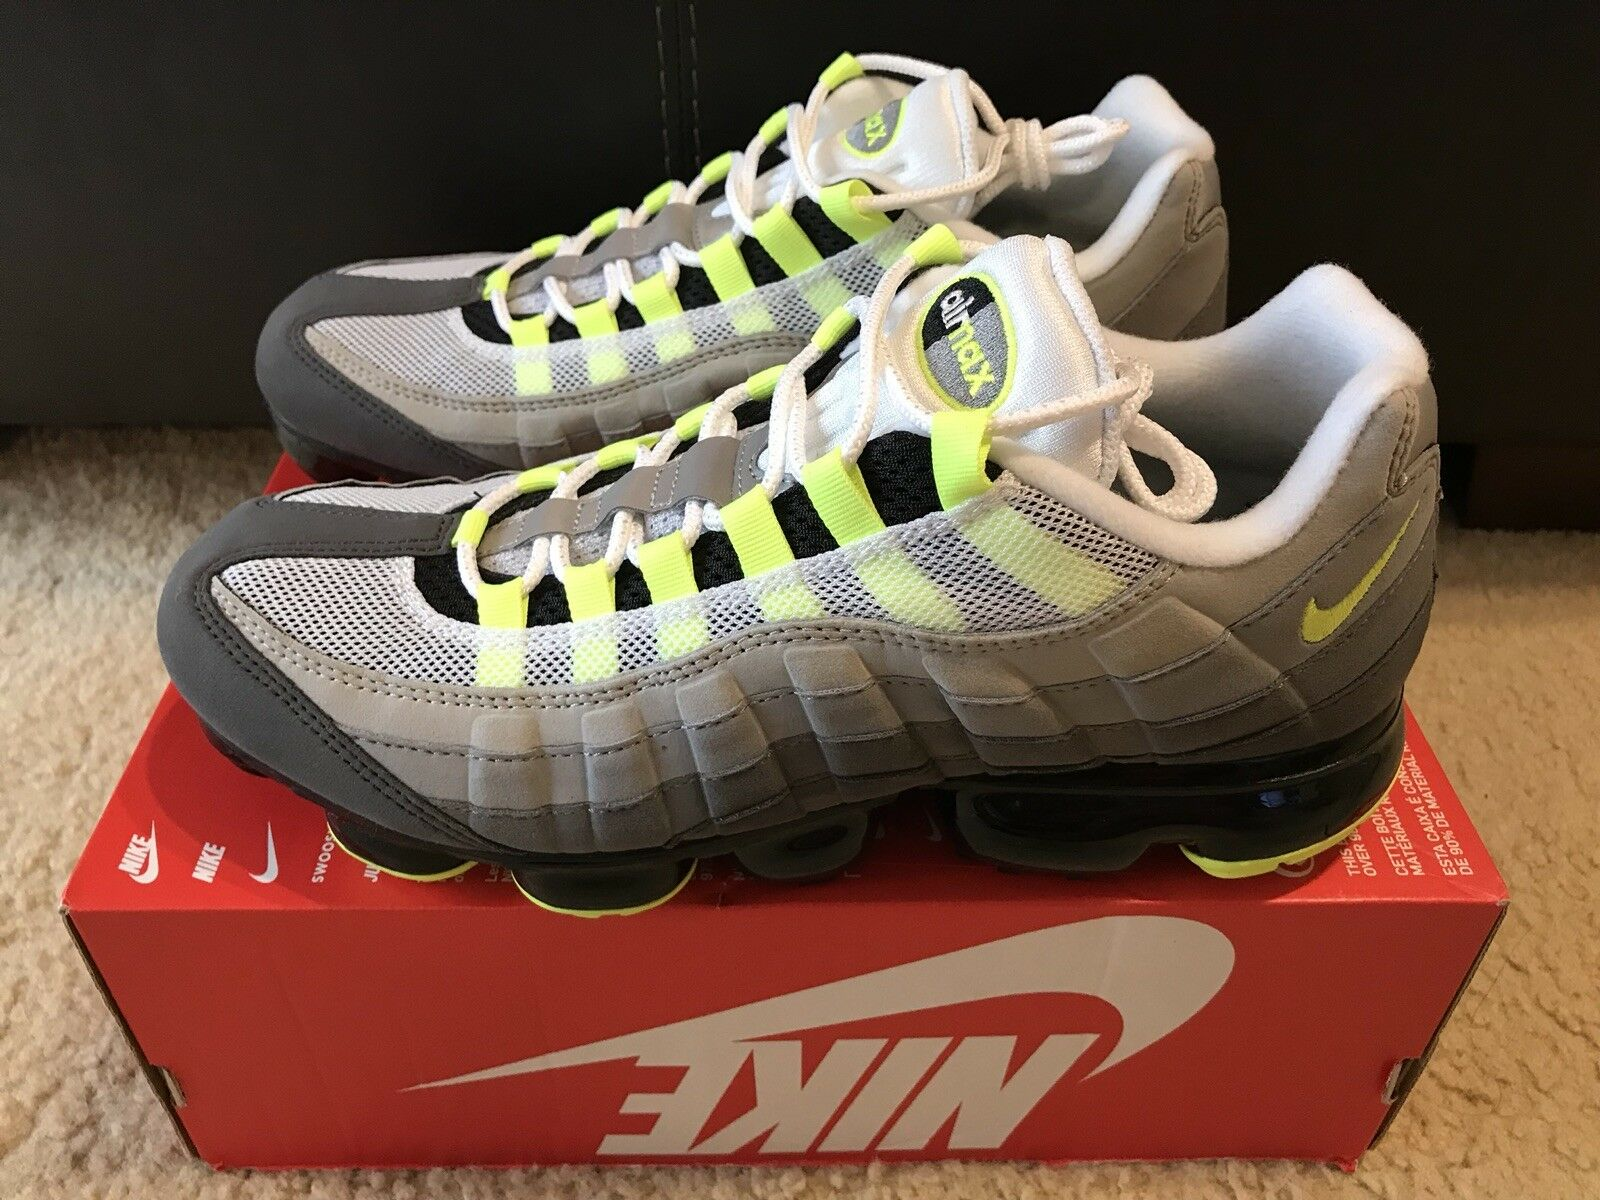 Nike Air VaporMax 95 Men's sz 10.5 Black Volt MEIDUM ASH AJ7292 001